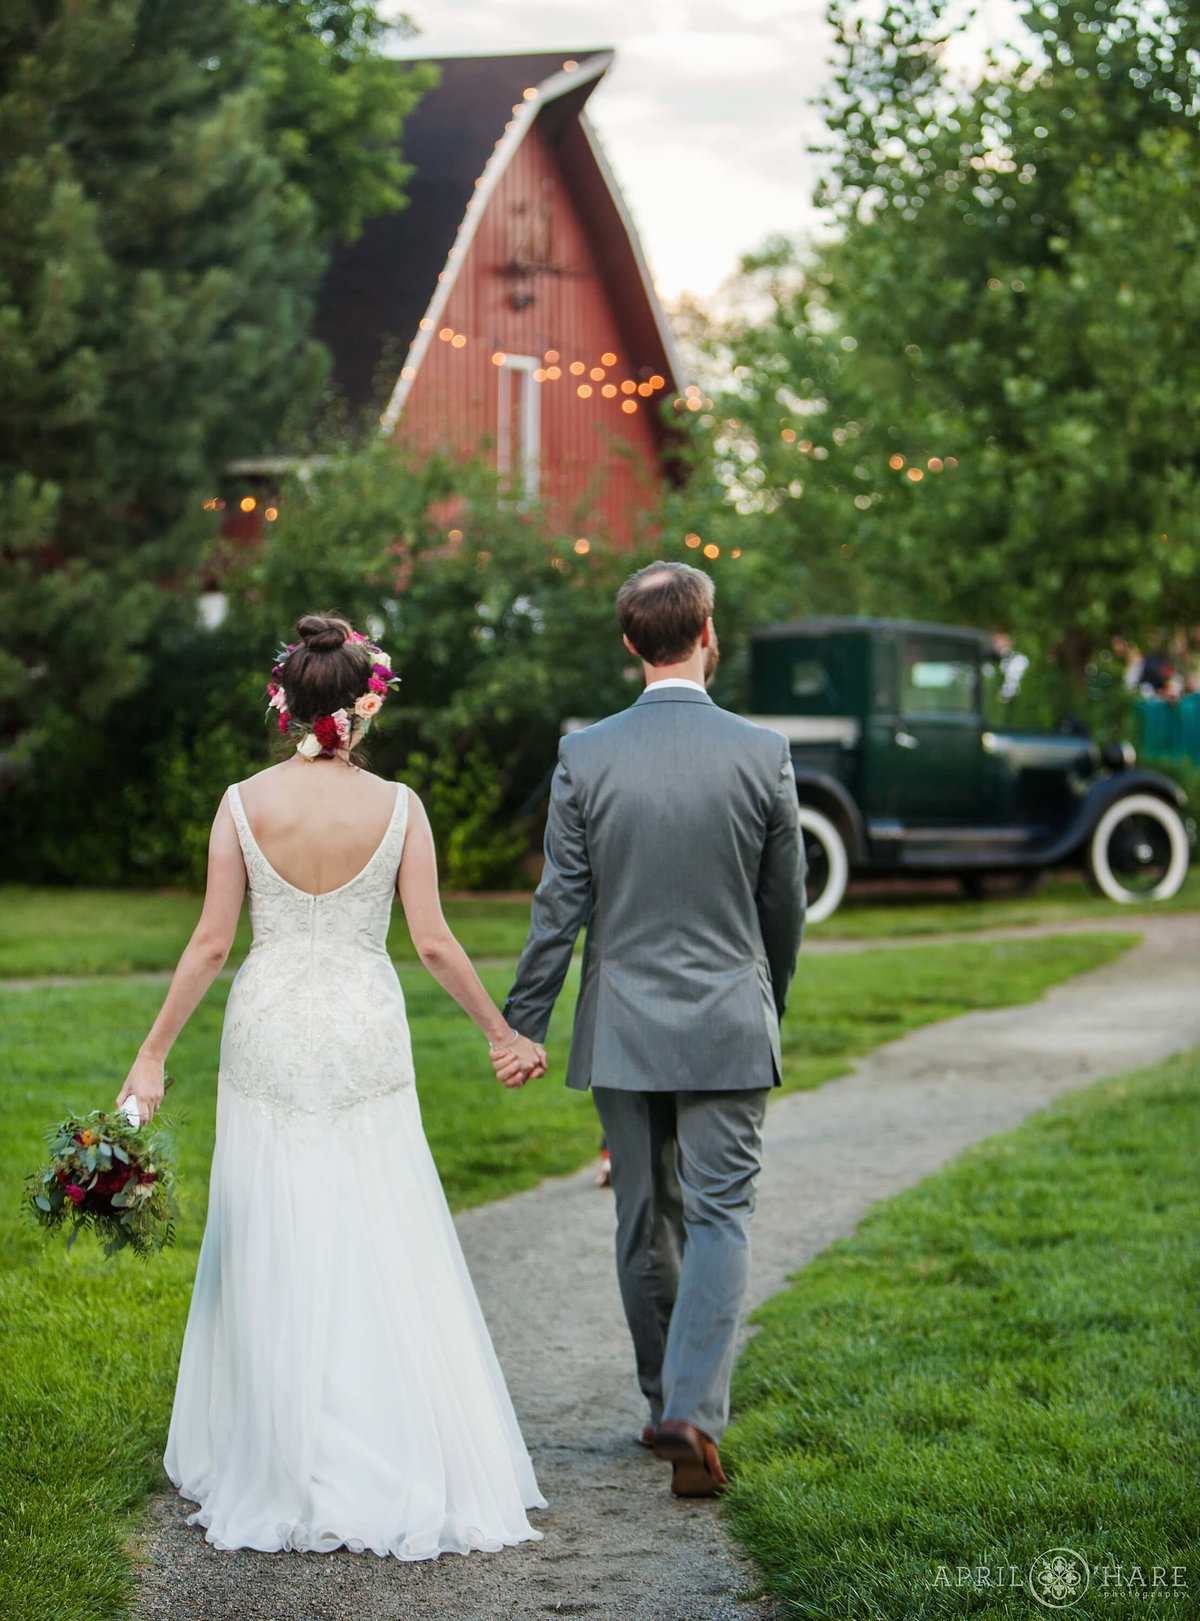 Colorado Wedding Photographer Couples walks to barn reception at Chatfield Farms